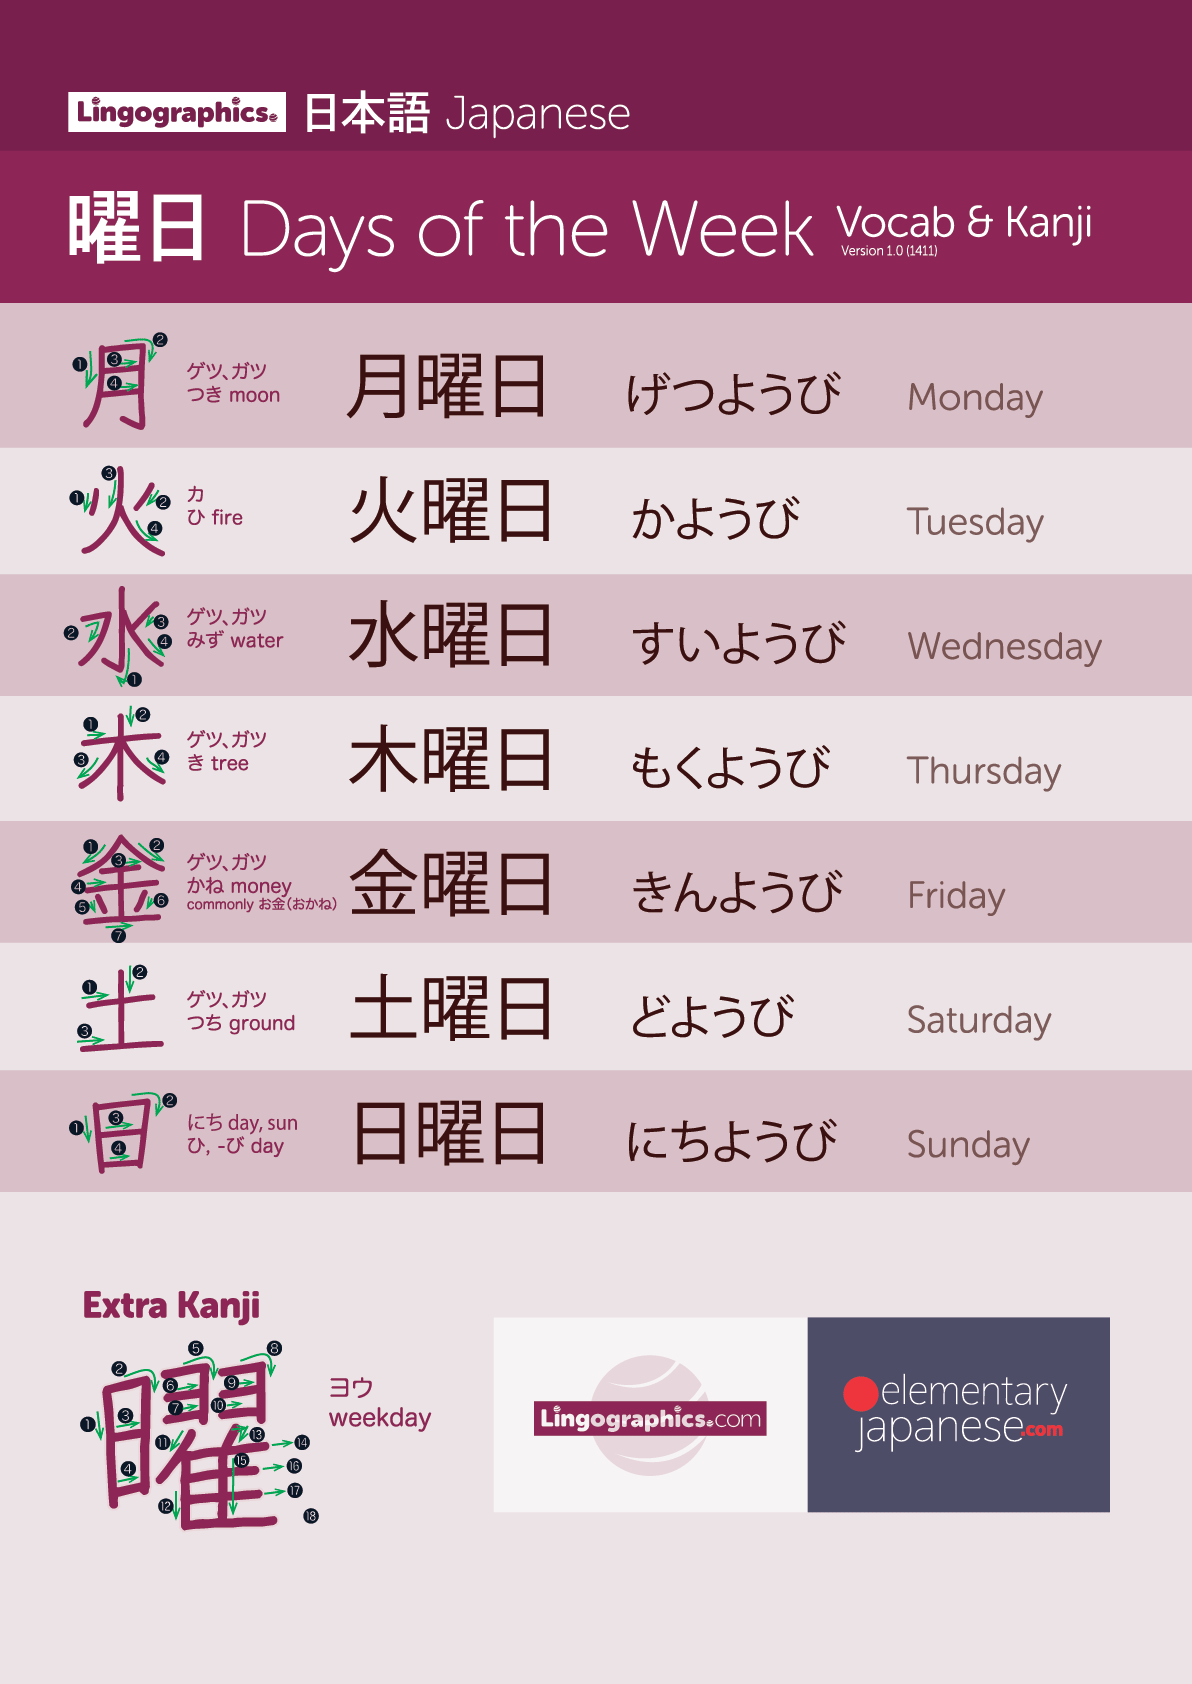 Days of the week in Japanese with kanji